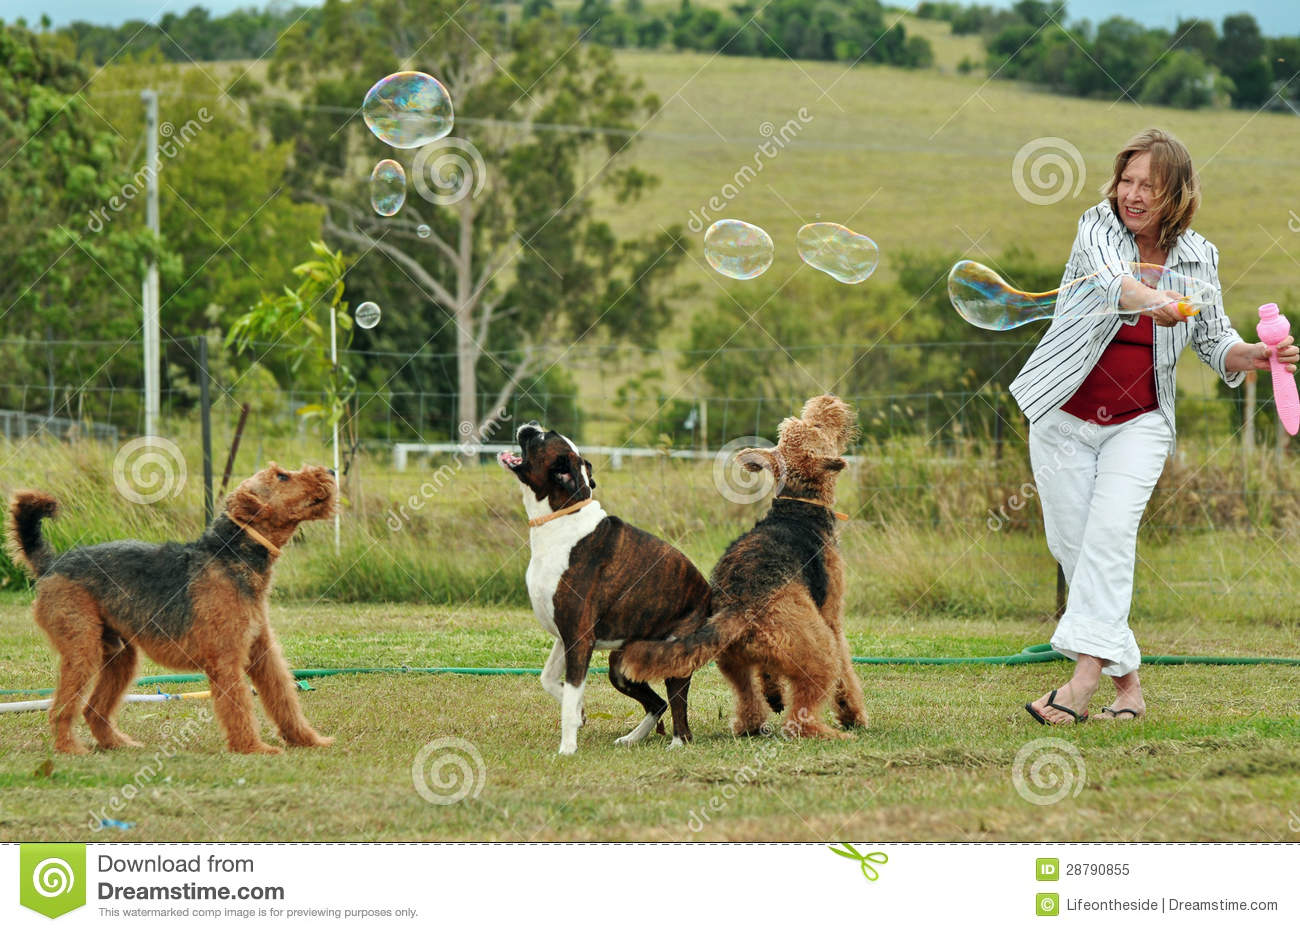 Woman blowing bubbles playing with her dogs